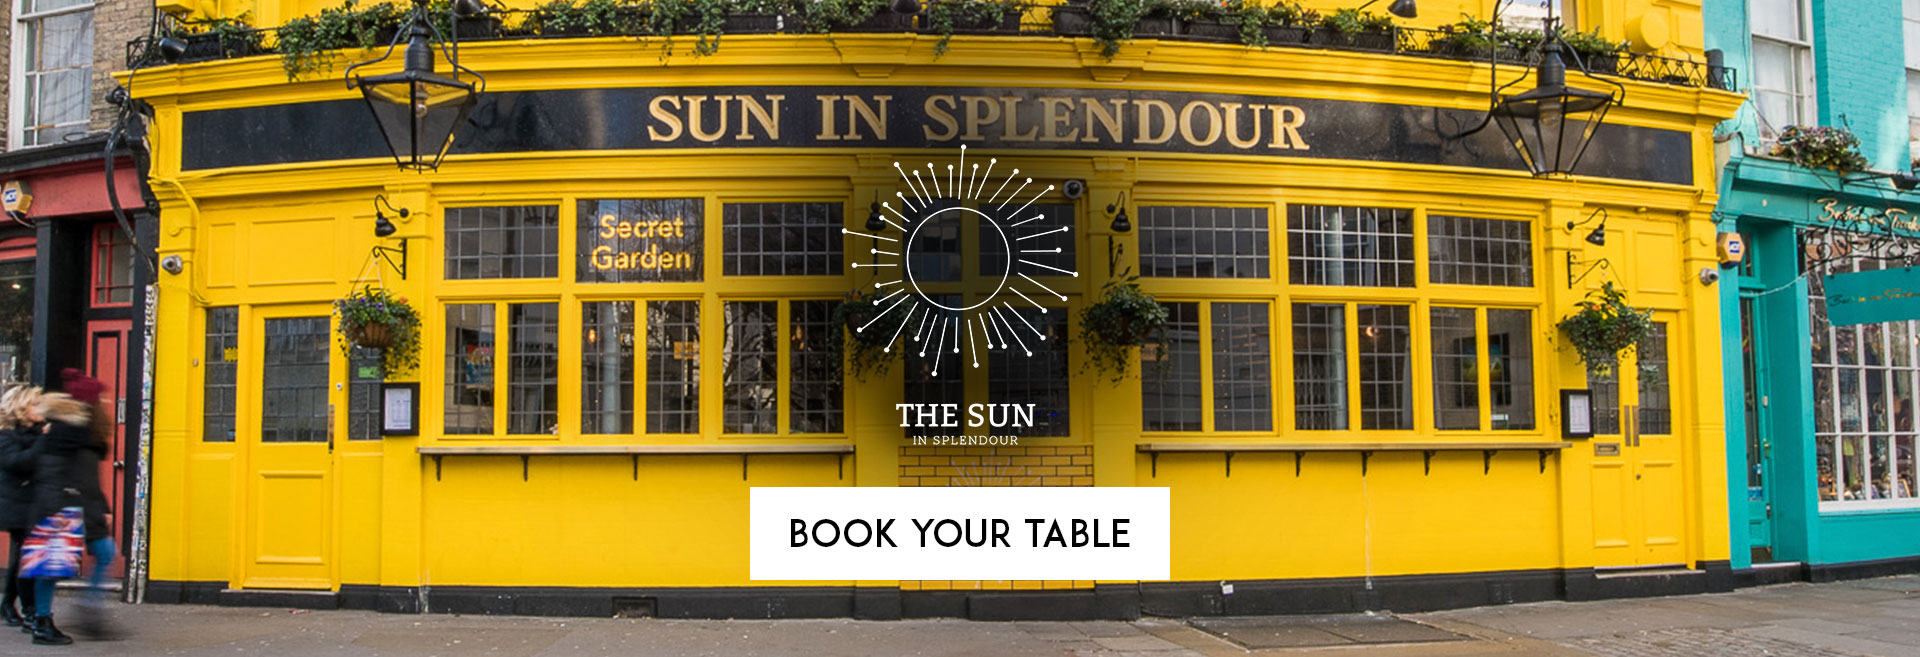 Book Your Table at The Sun In Splendour